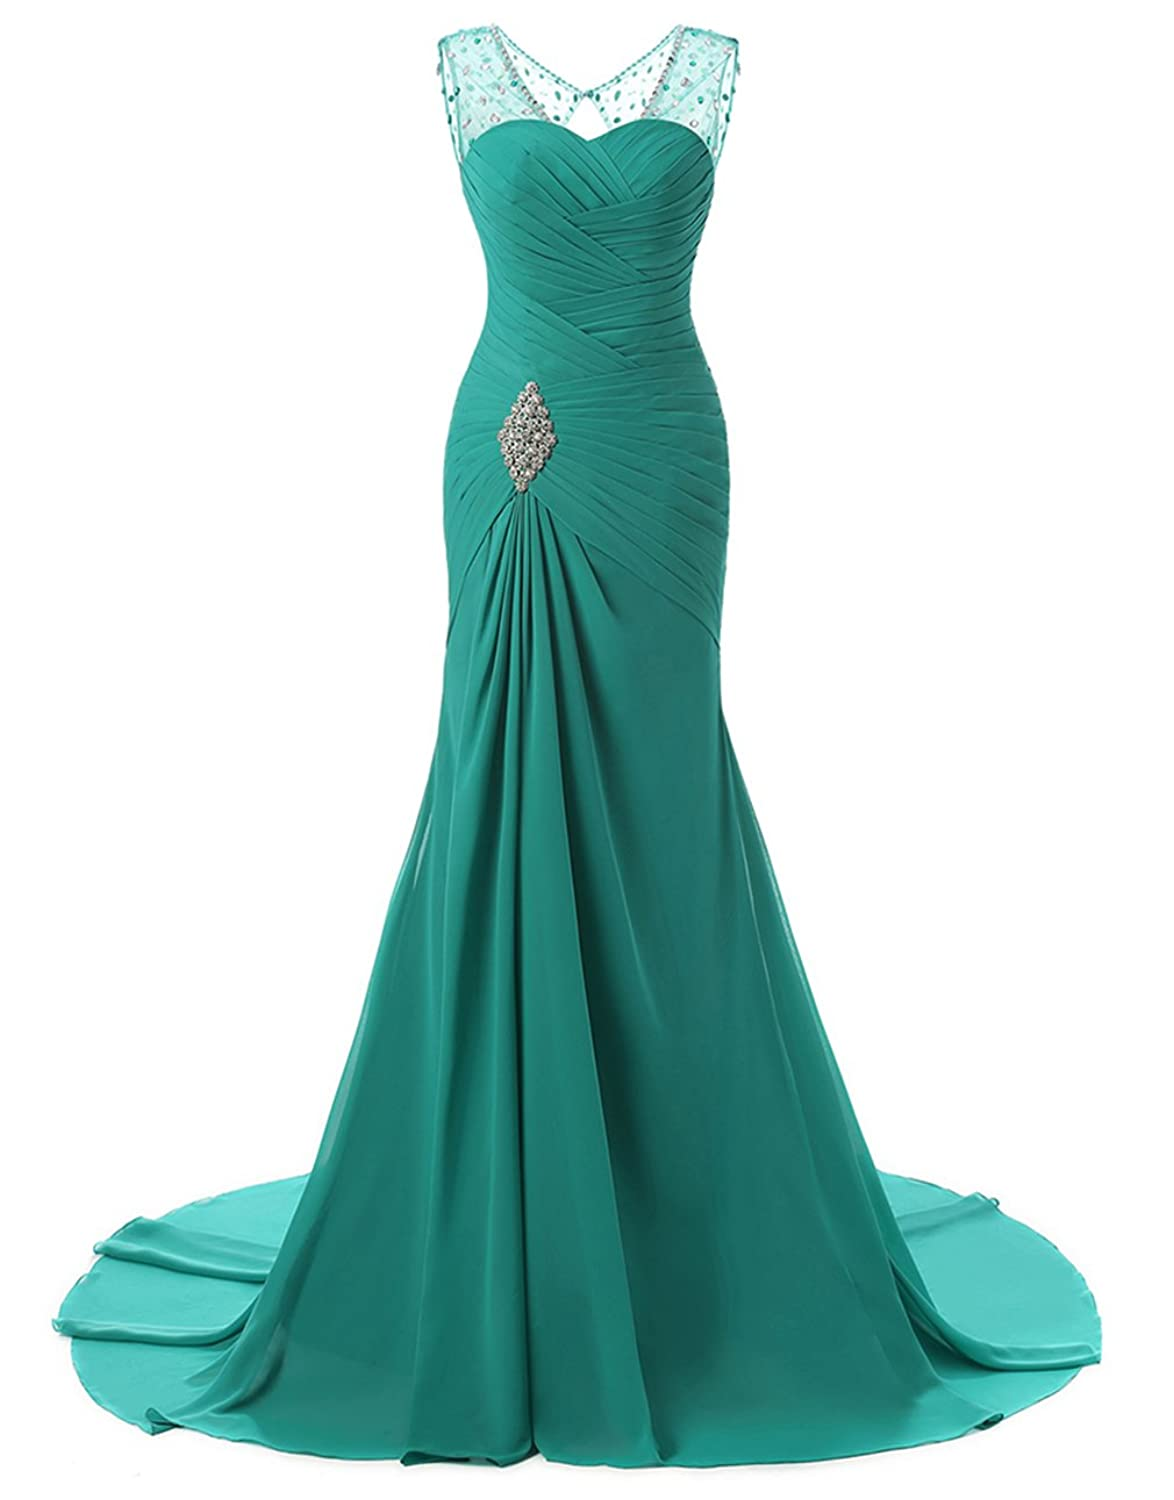 Biwinky Women Prom Dresses Long Evening Party Cocktail Dress Maxi Dresses